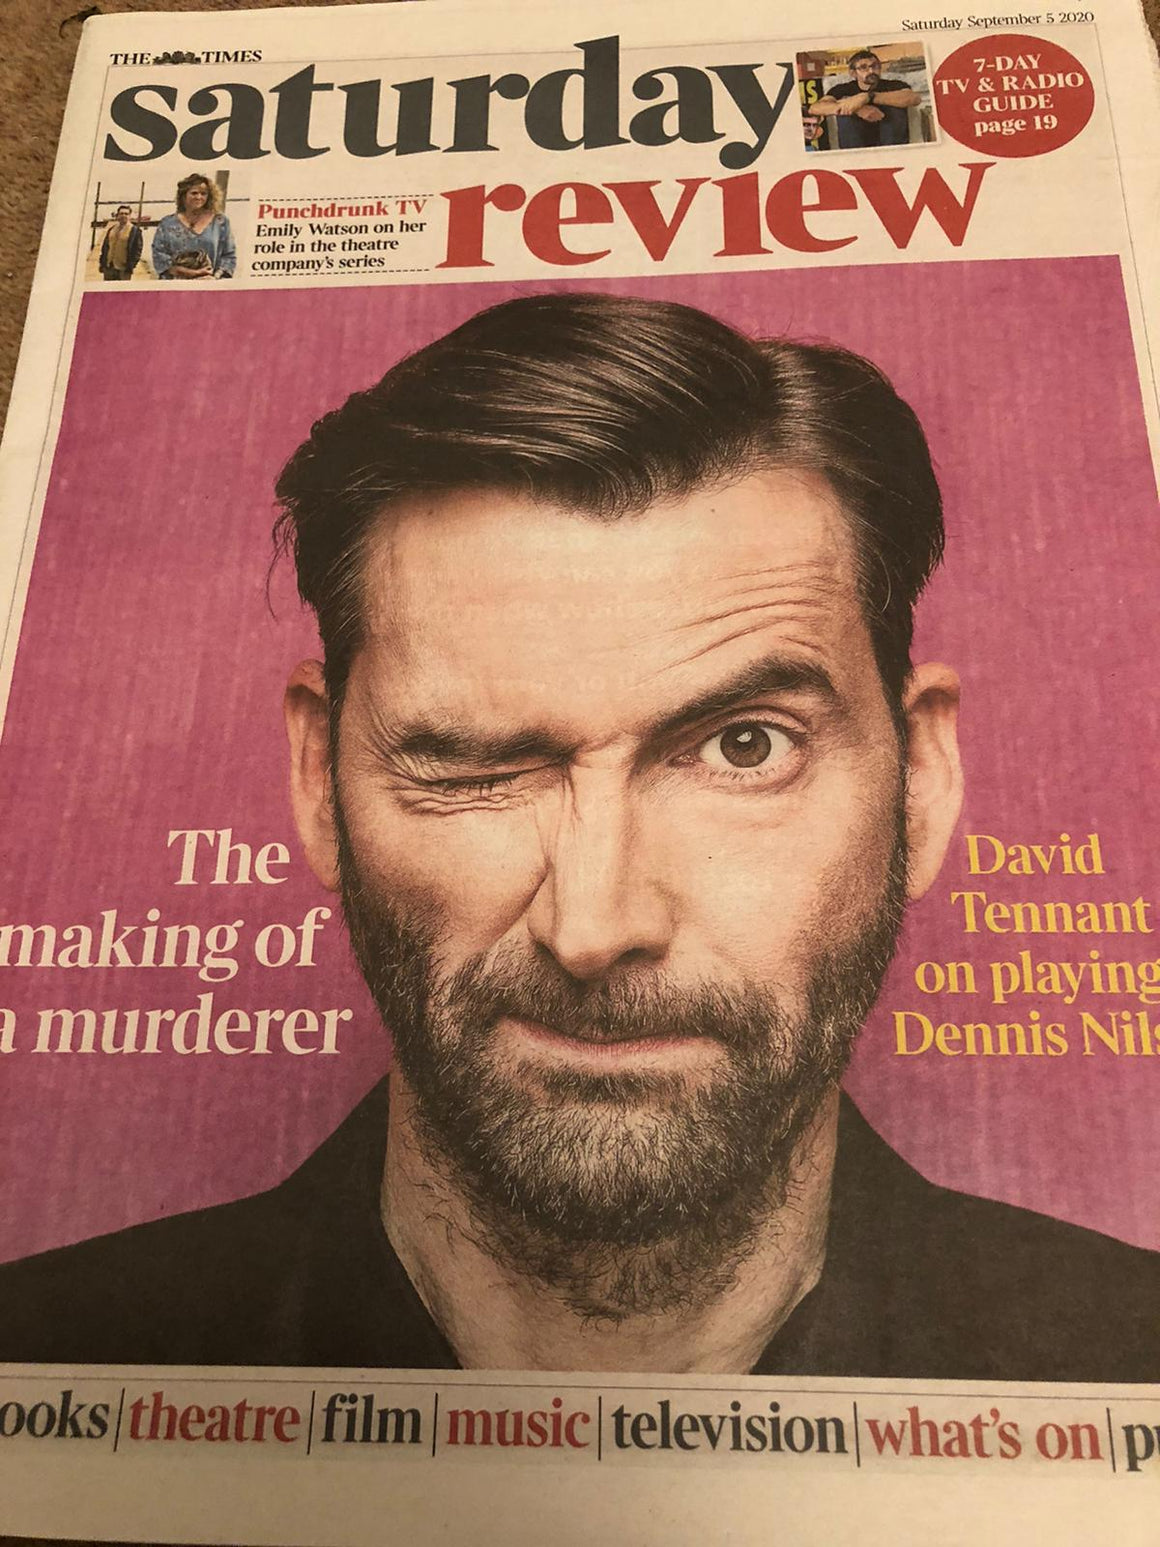 UK TIMES REVIEW supplement Sept 2020: DAVID TENNANT COVER FEATURE Emily Watson